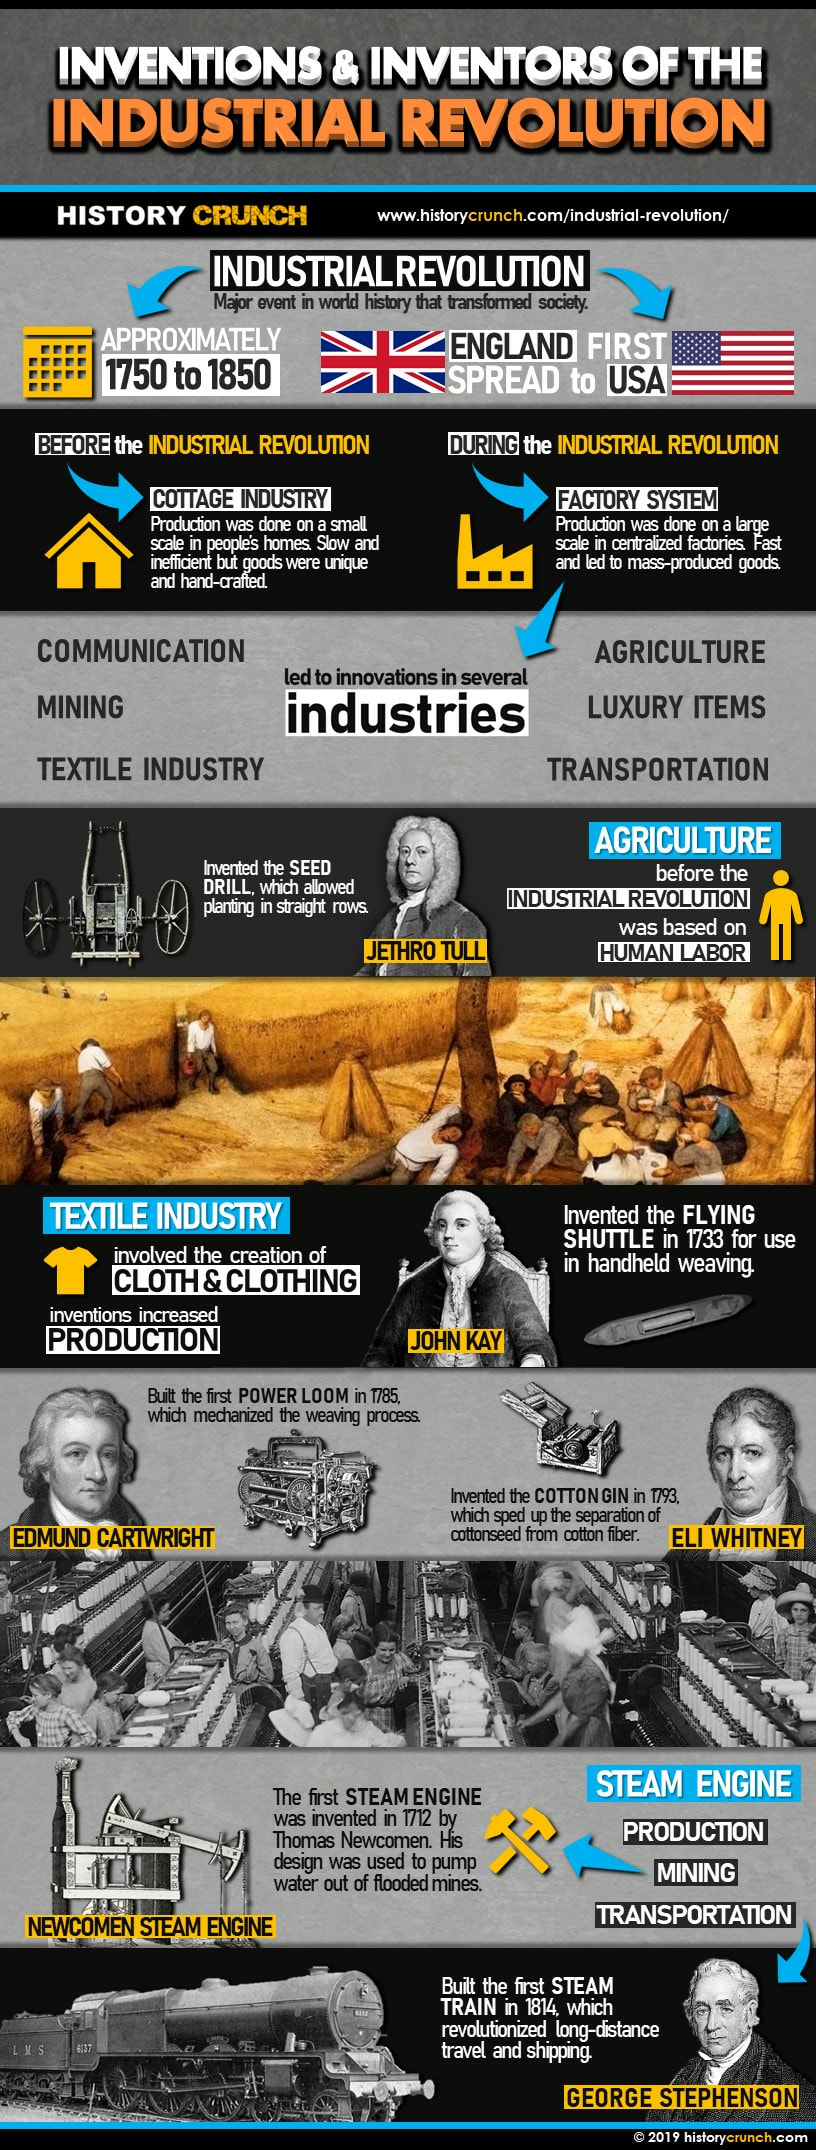 Inventions and Inventors of the Industrial Revolution Infographic